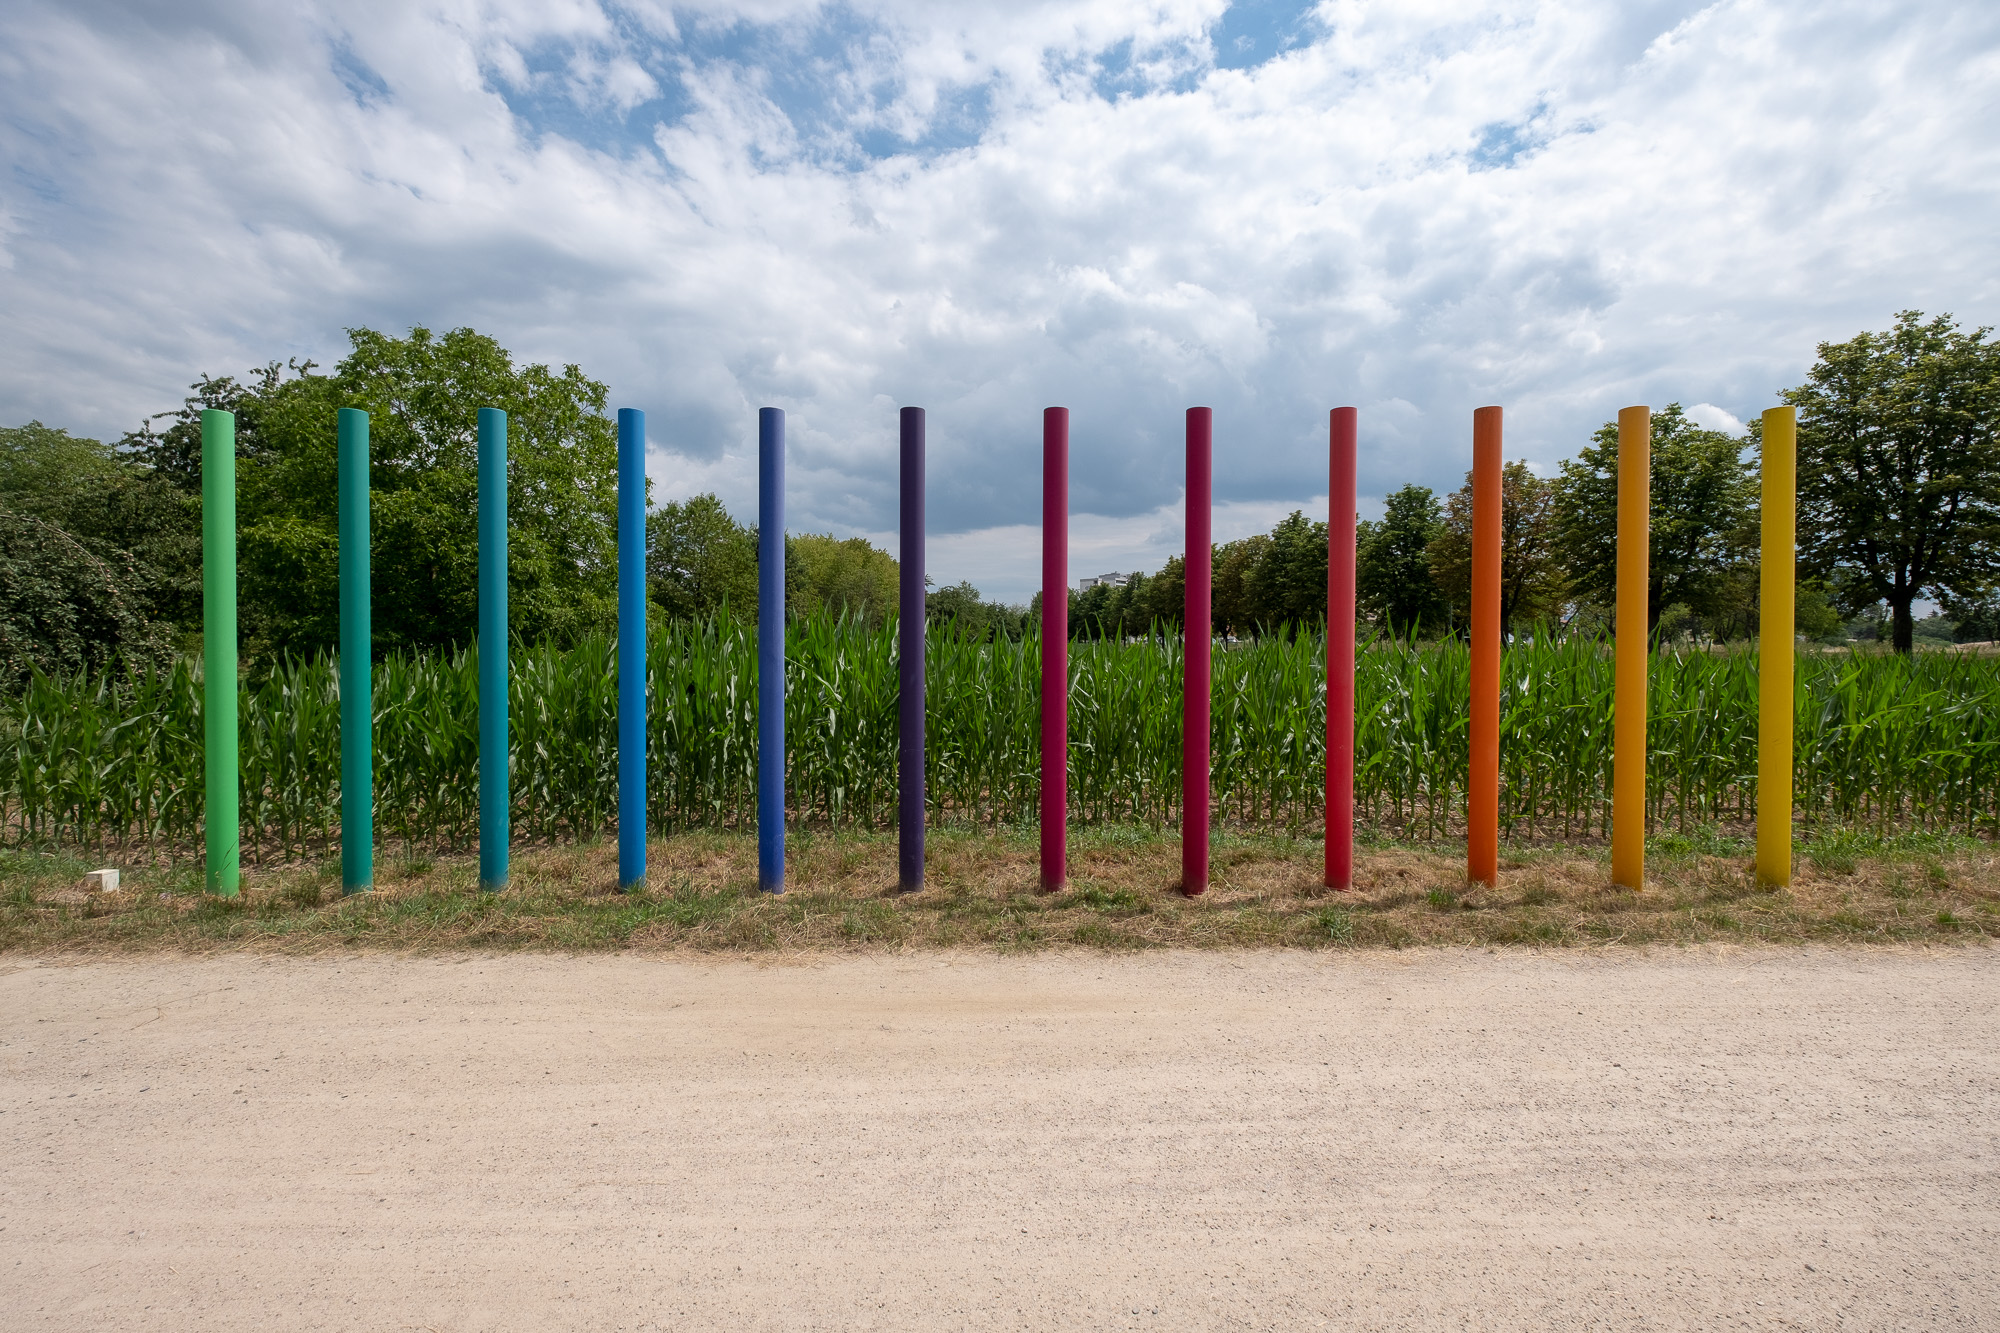 A photo of a sculpture in a field. It consists of 12 poles emerging from the earth and pointing upwards. They're arranged in a row, and are coloured like a rainbow, from green to blue, red, and yellow.